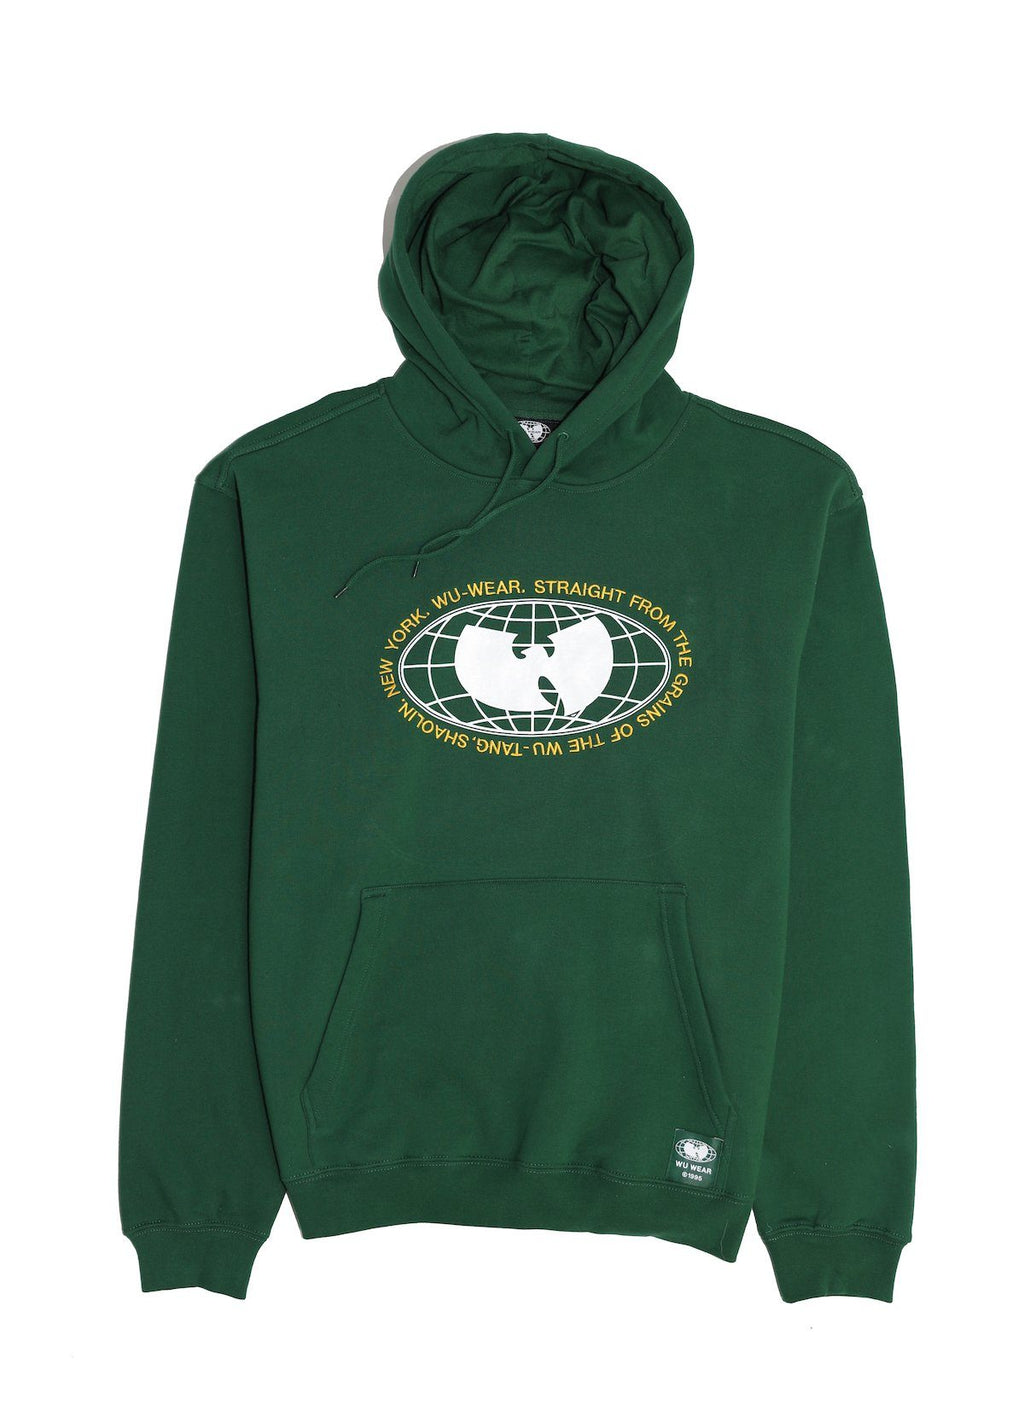 GRAINS HOODIE - GREEN - Wu Wear